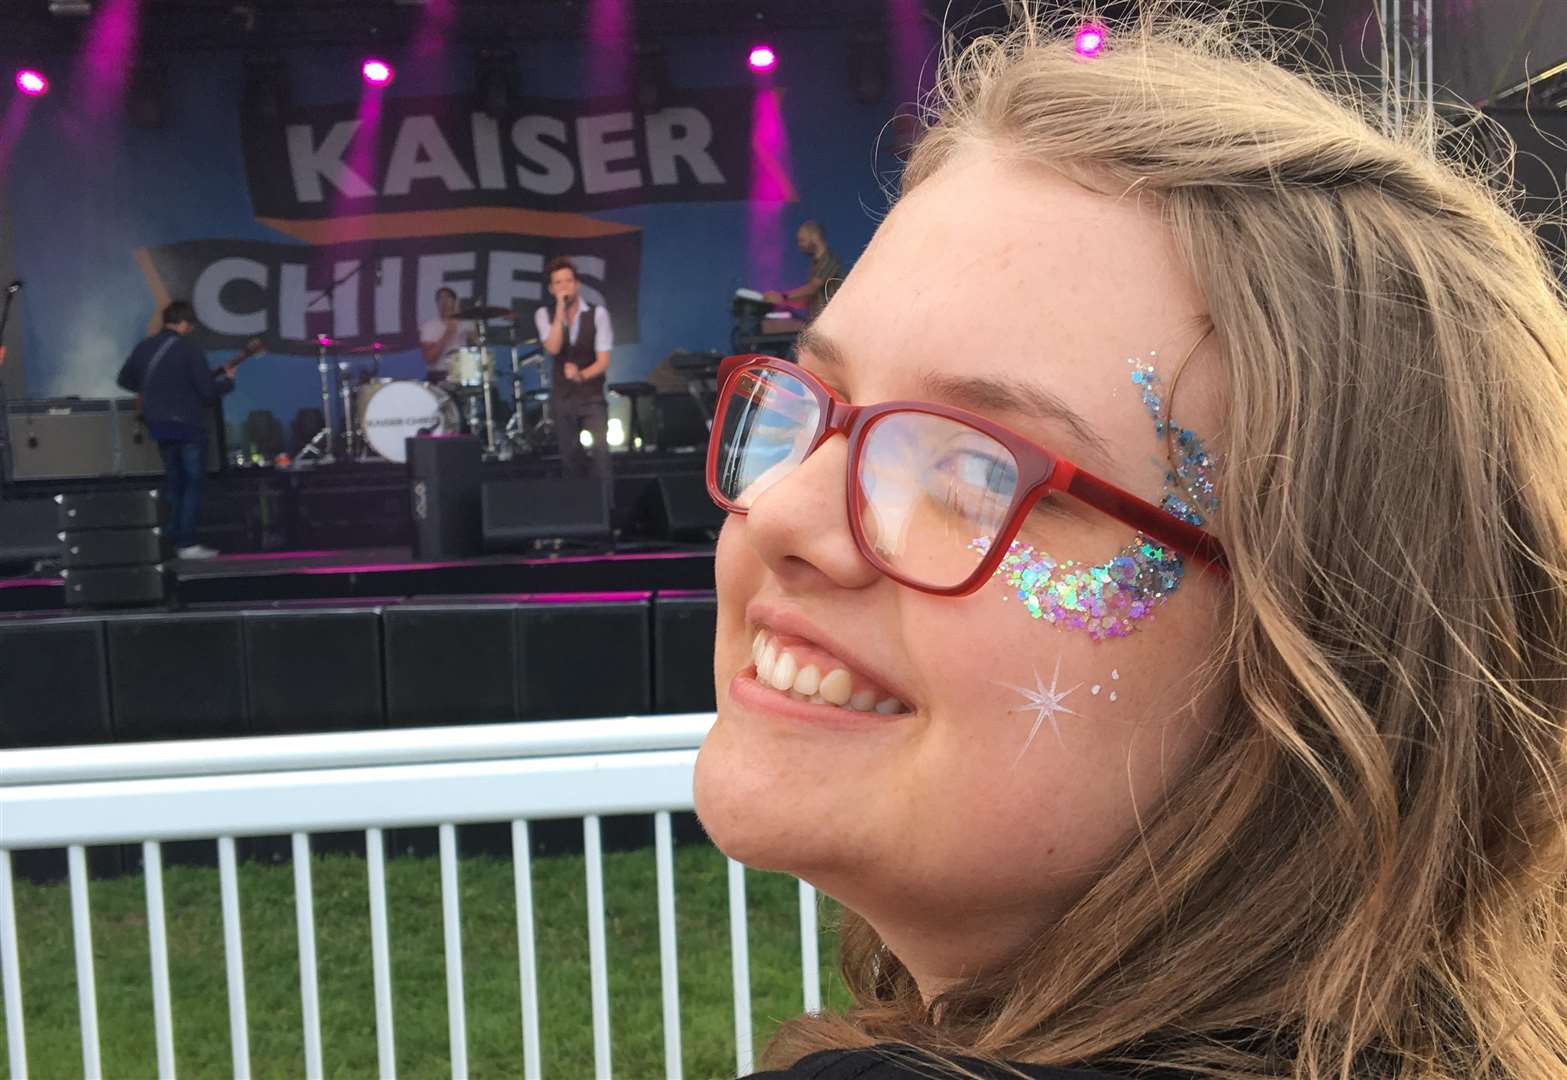 Brave Grantham teenager to shave hair off for charity